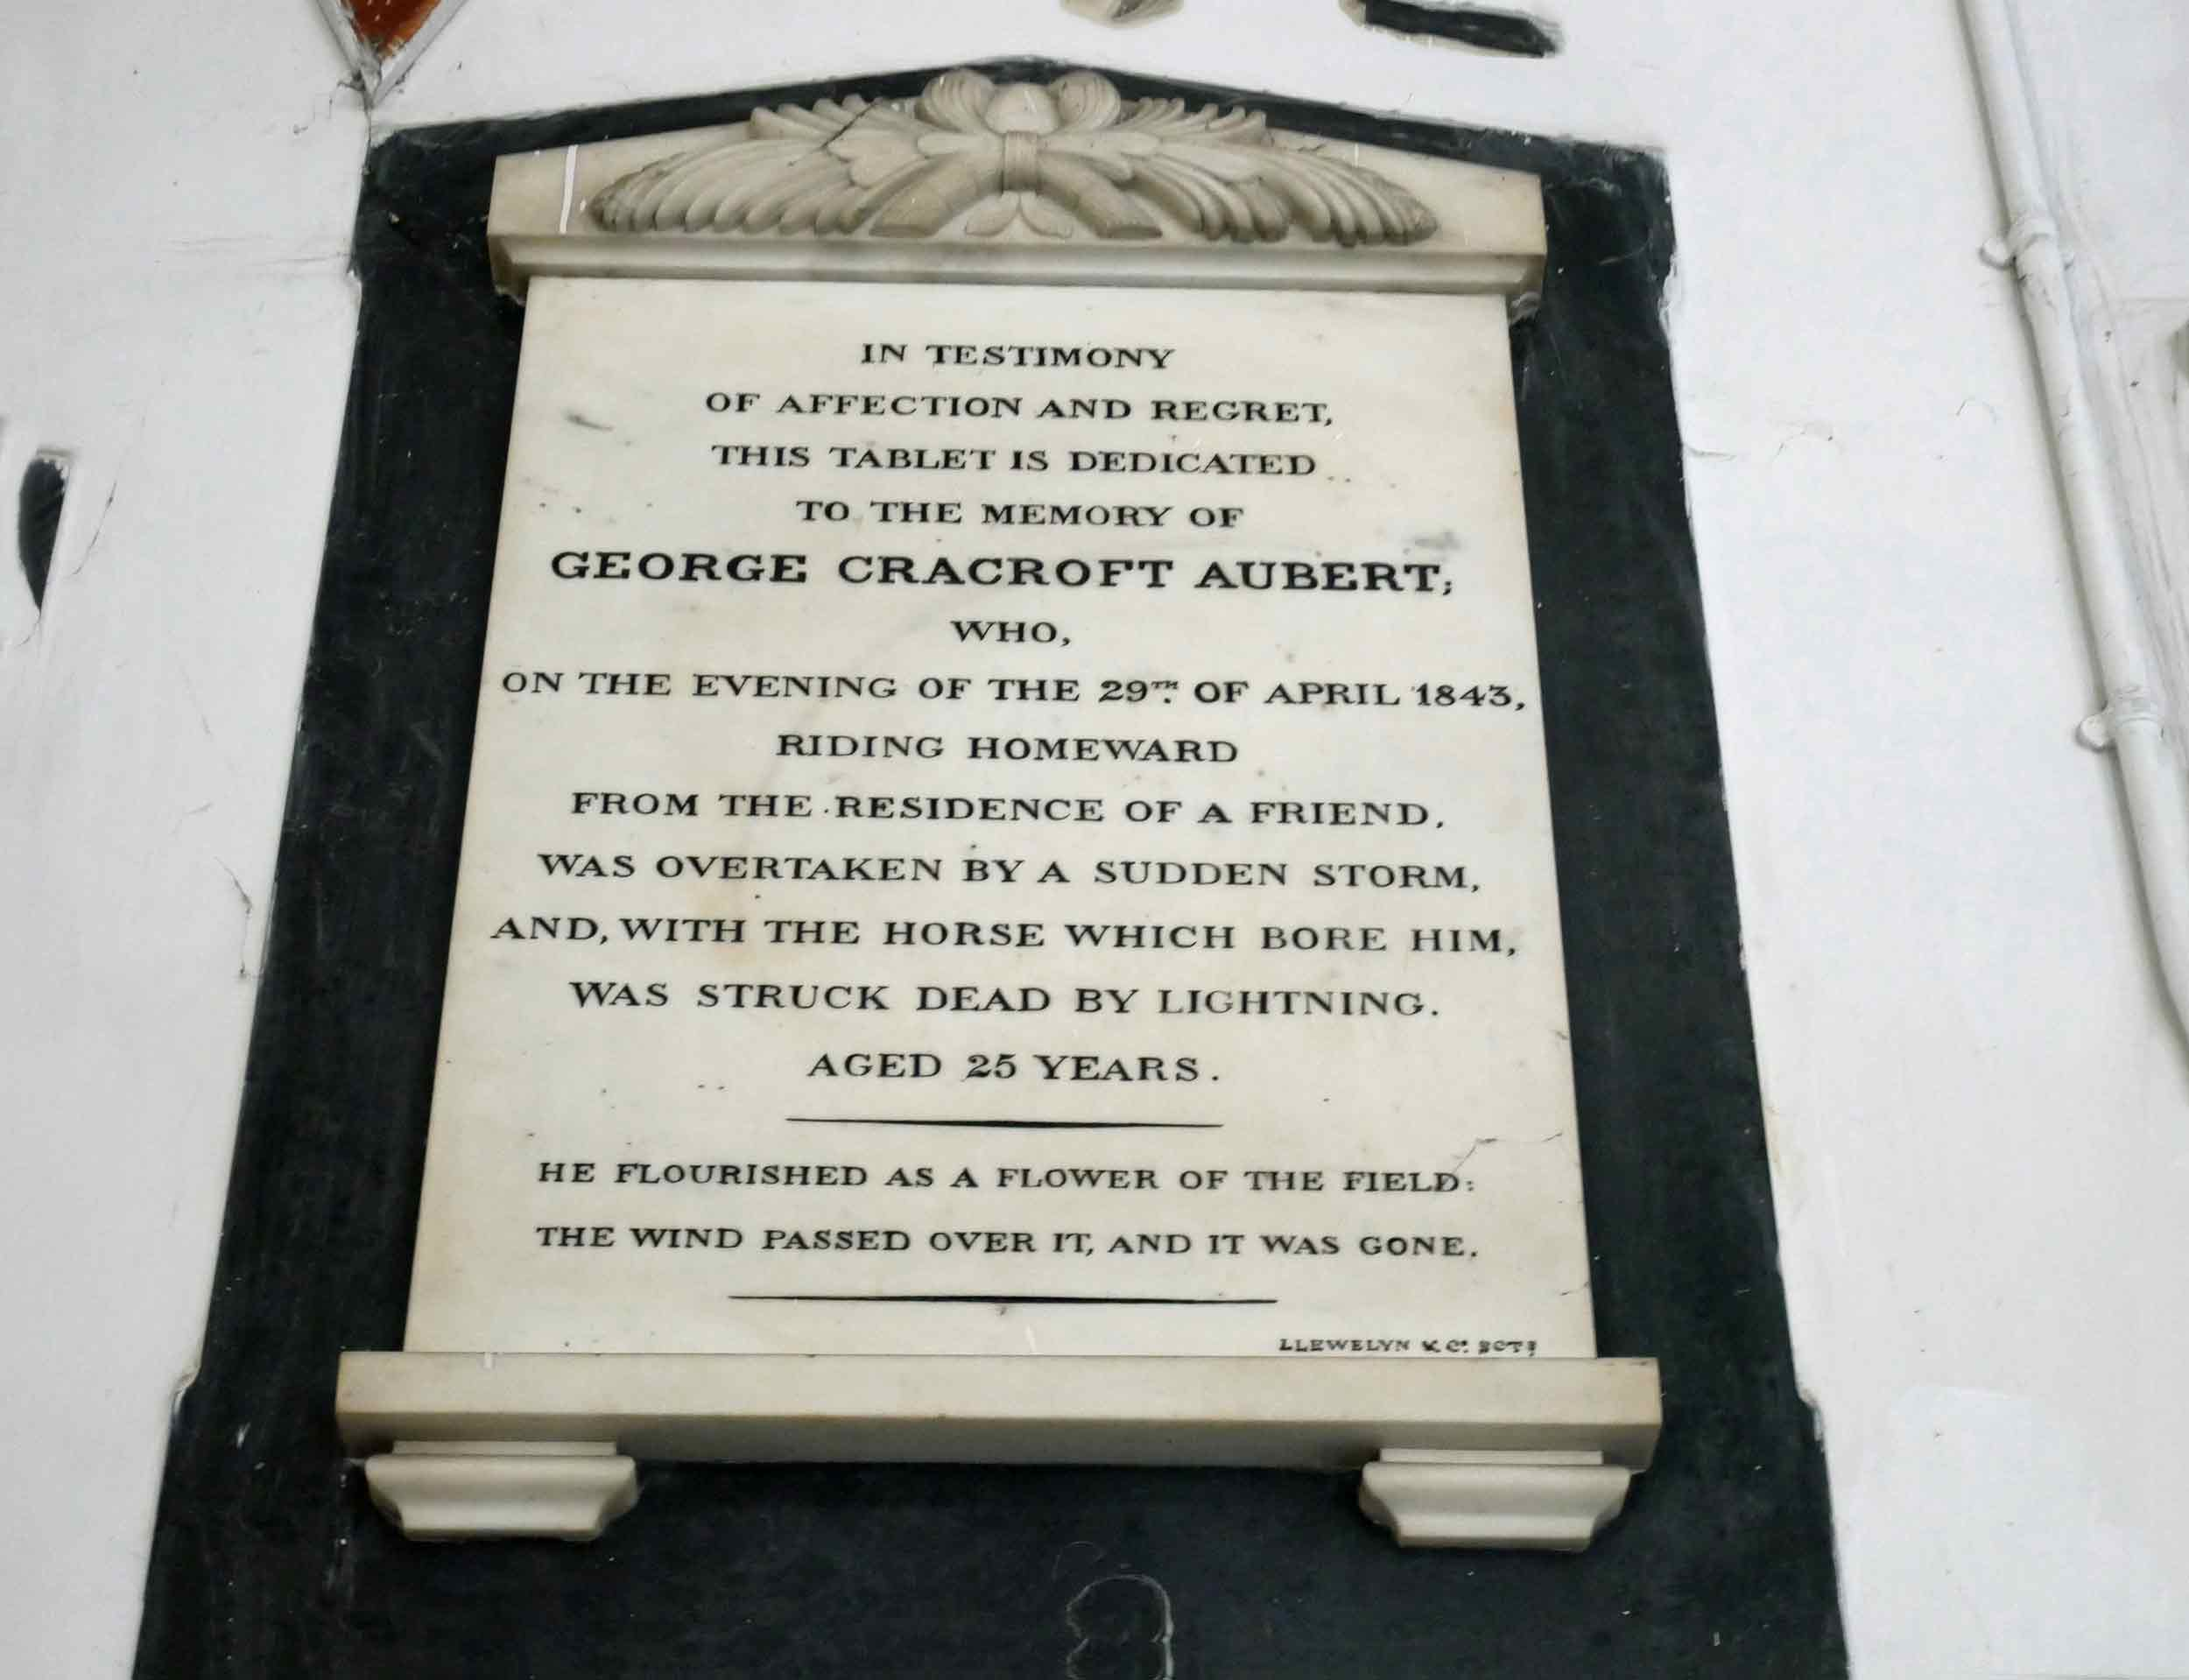 Plaque in St. John's Church, one of the first buildings erected by the East India Co.,speaks to a parishioner's untimely and unfortunate demise (Nov 20).